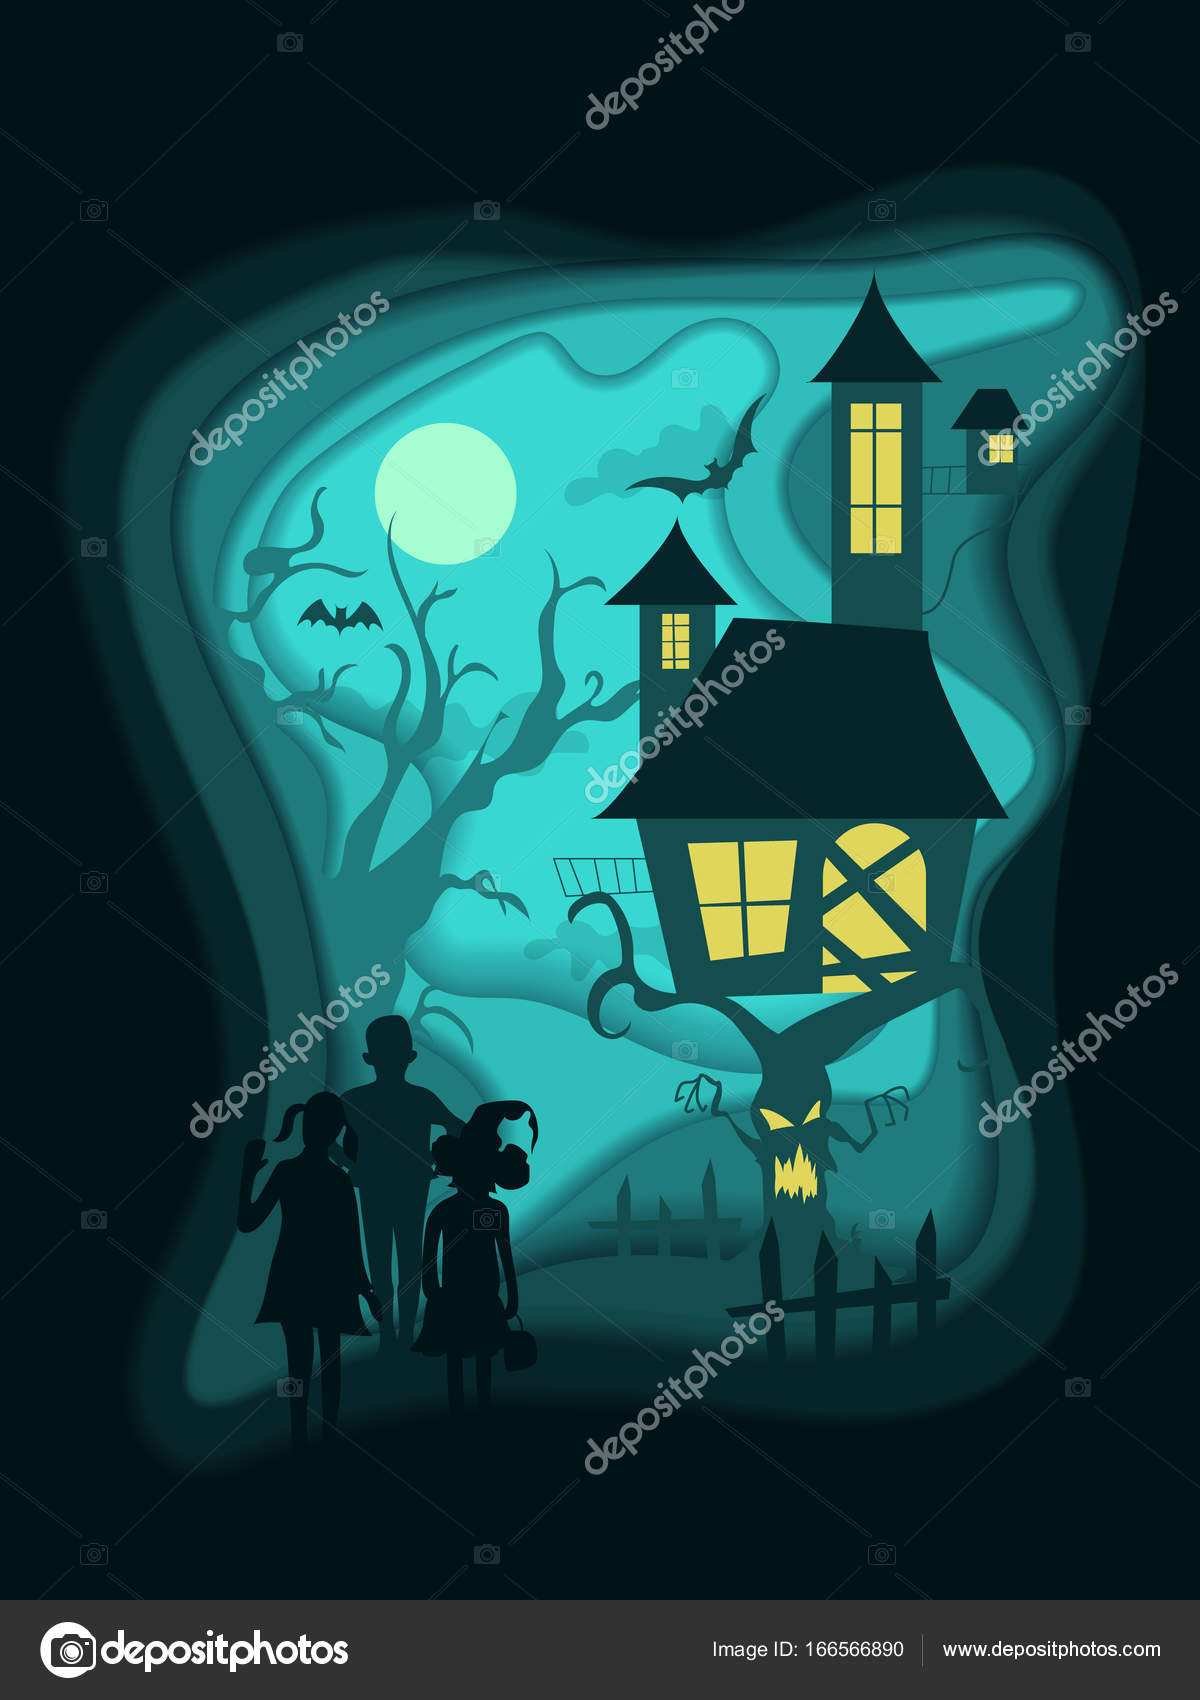 1200x1700 Halloween Night Background With Children, Haunted House On Scary